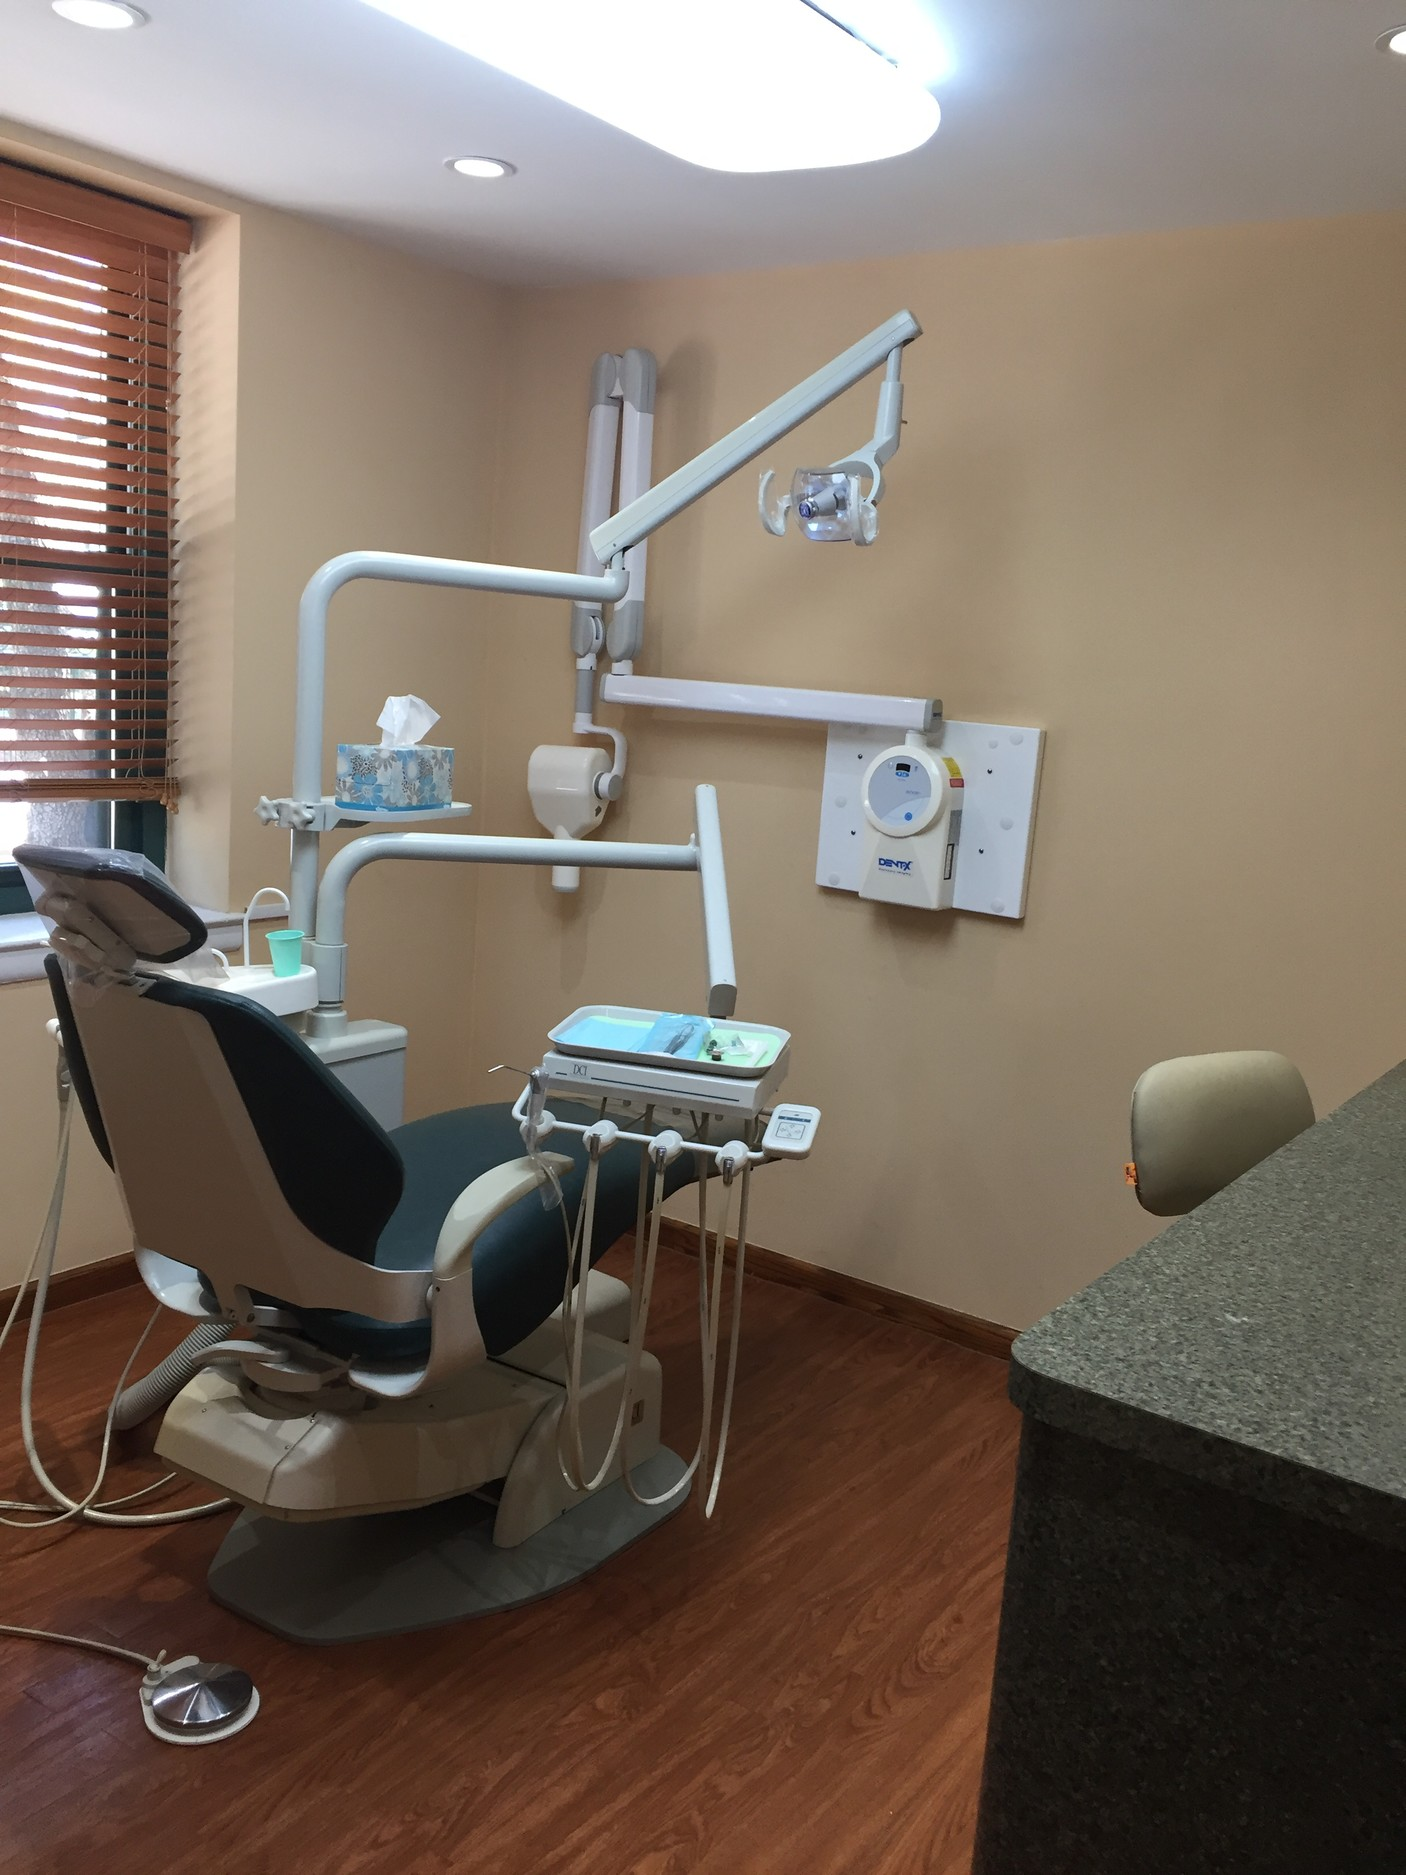 The Art of Dentistry has high-quality equipment to put a patient at ease.